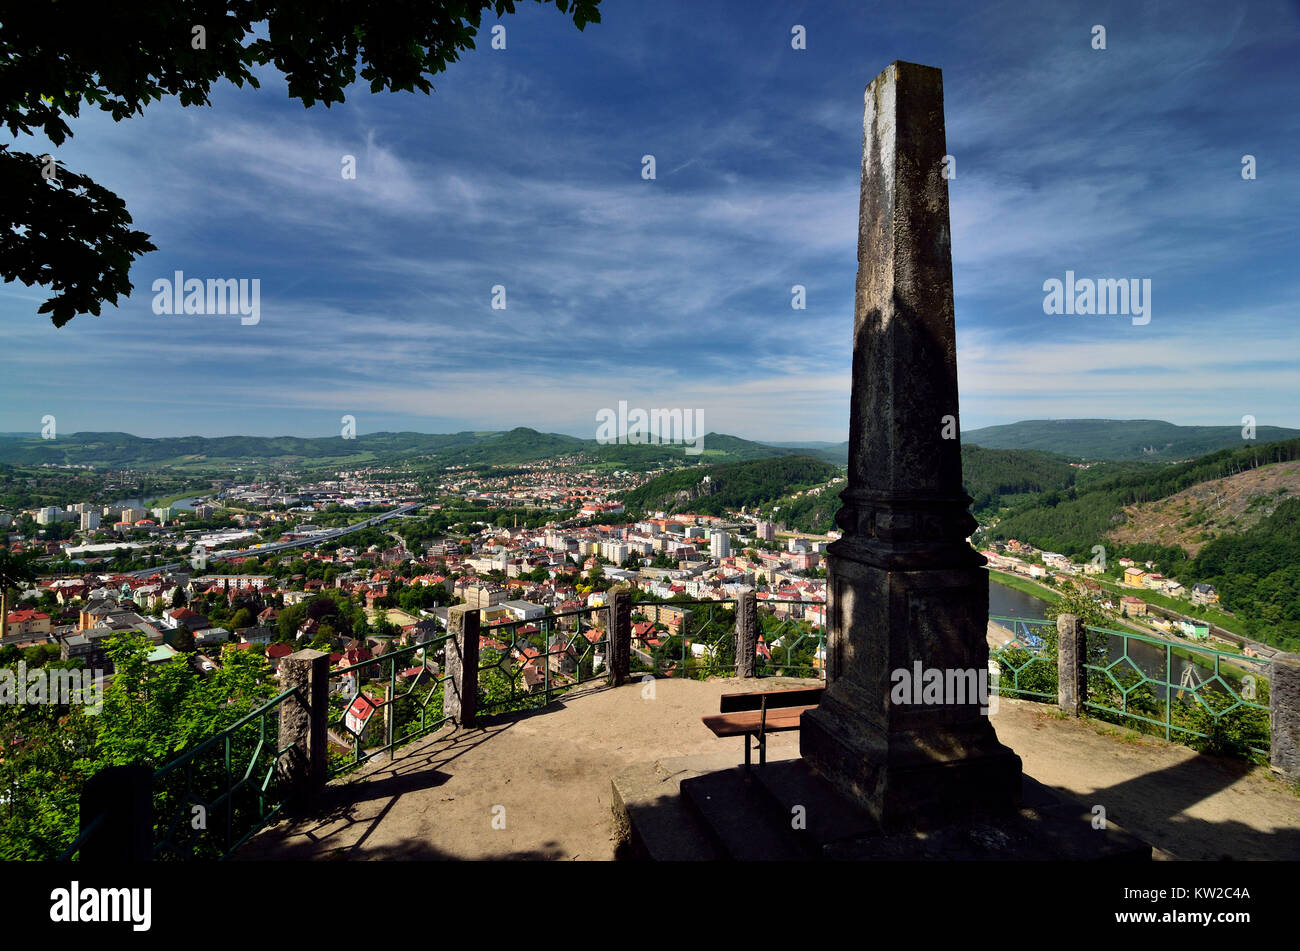 Decin Tschechien decin tetschen czechia decin of the vantage point ashlar mountain